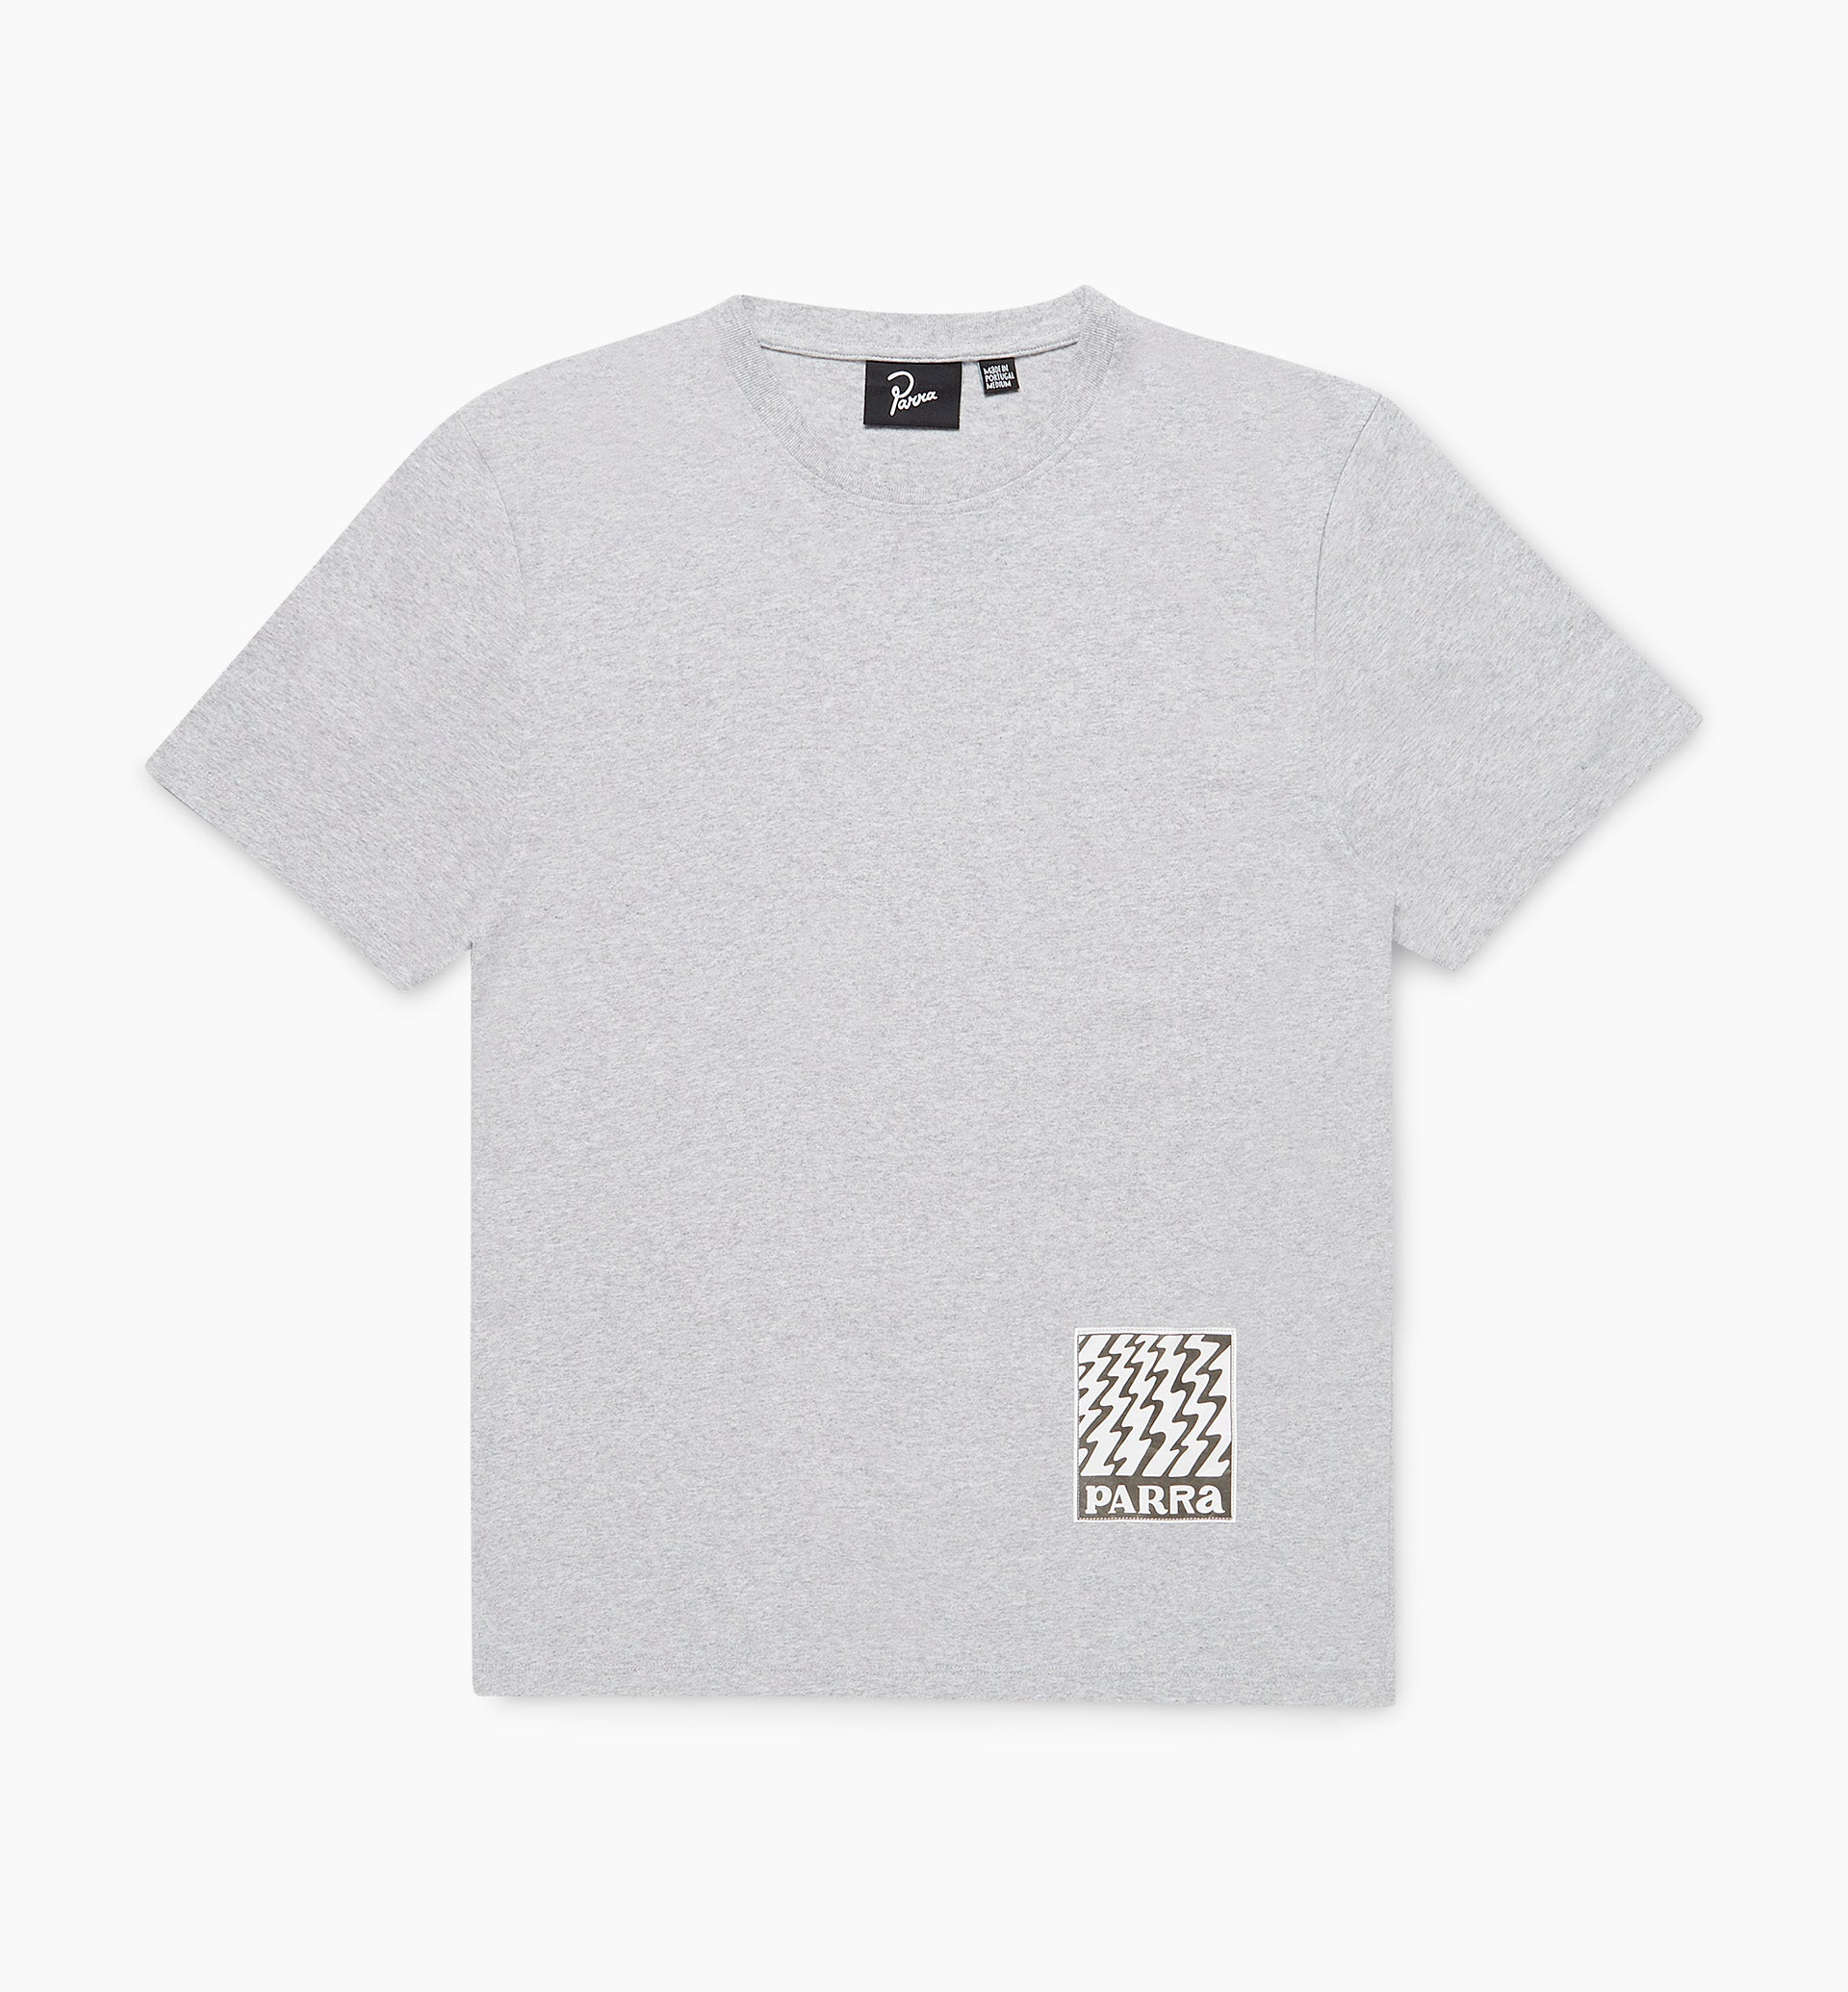 Parra - static logo t-shirt